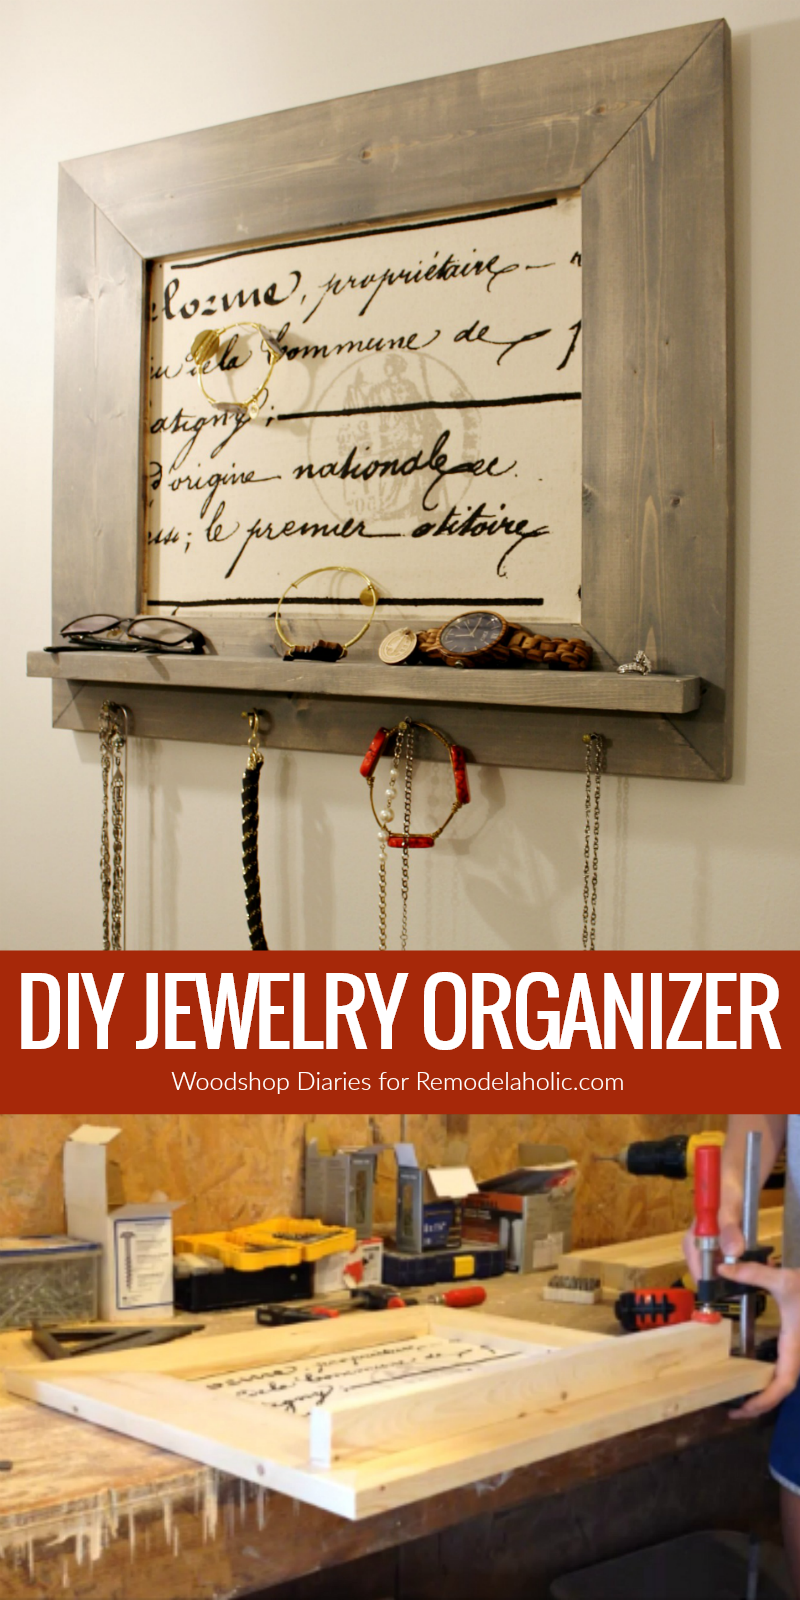 Remodelaholic How to Make a DIY Jewelry Organizer